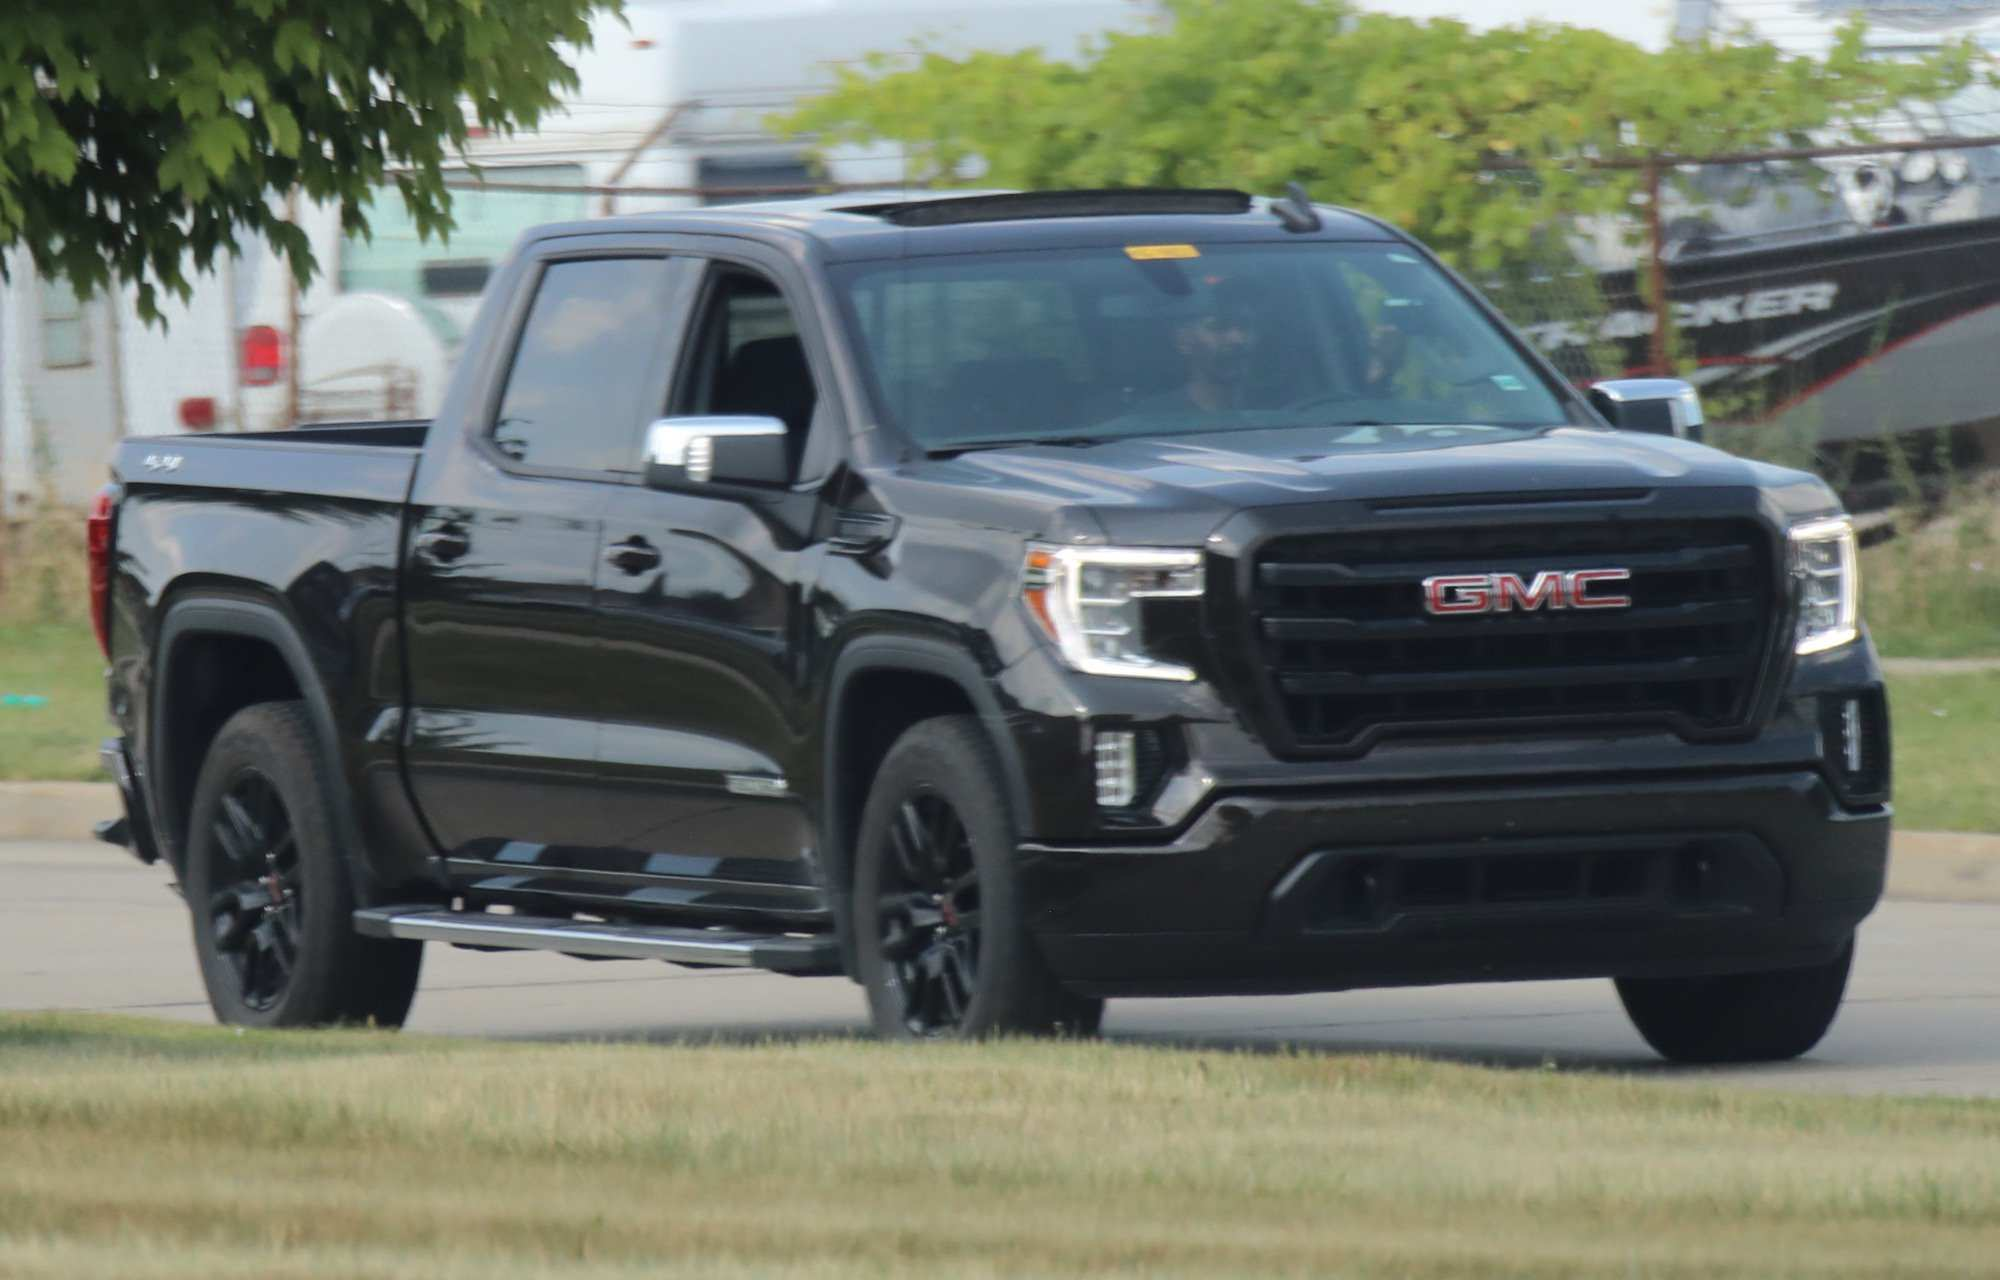 68 A GMC Elevation 2020 Review